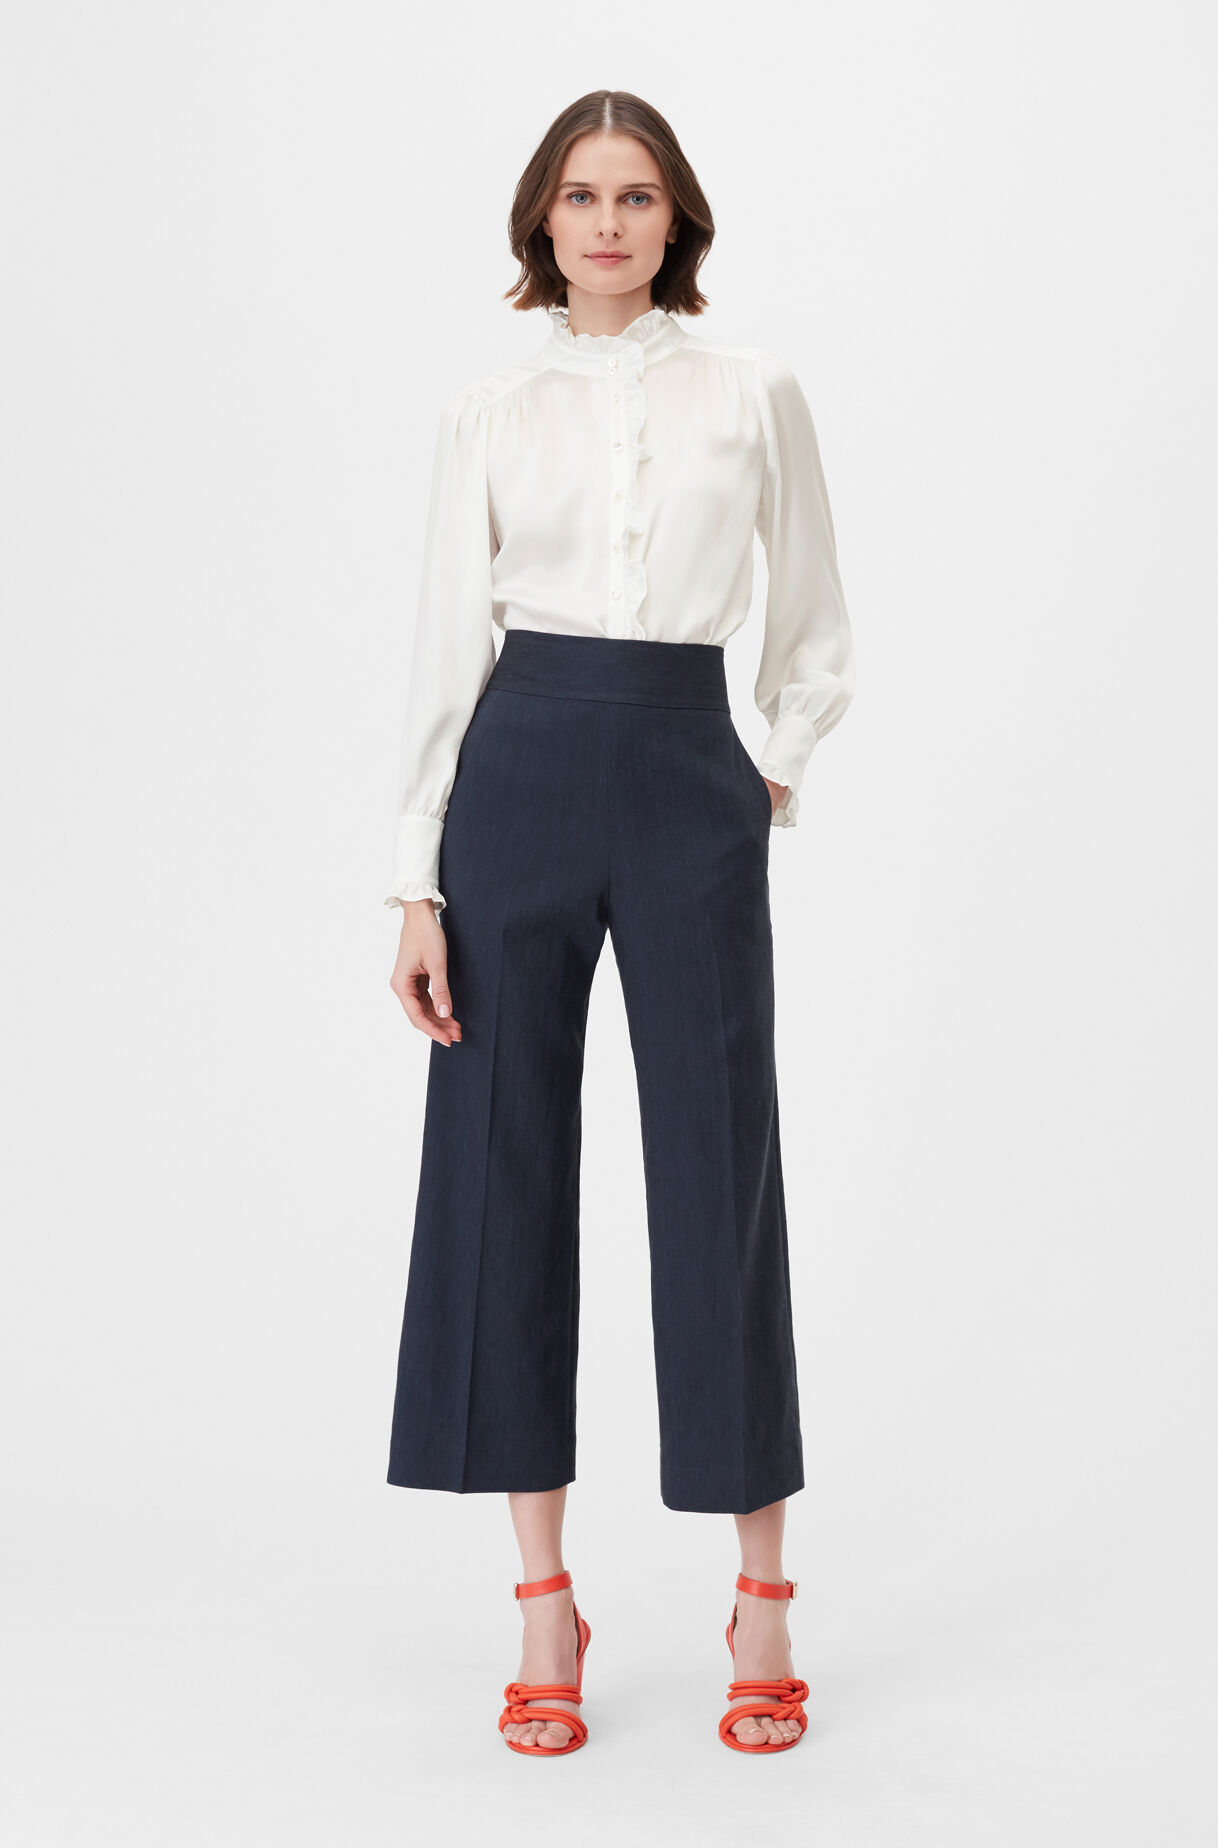 Tailored Stretch Linen Blend Cropped Pant, , large